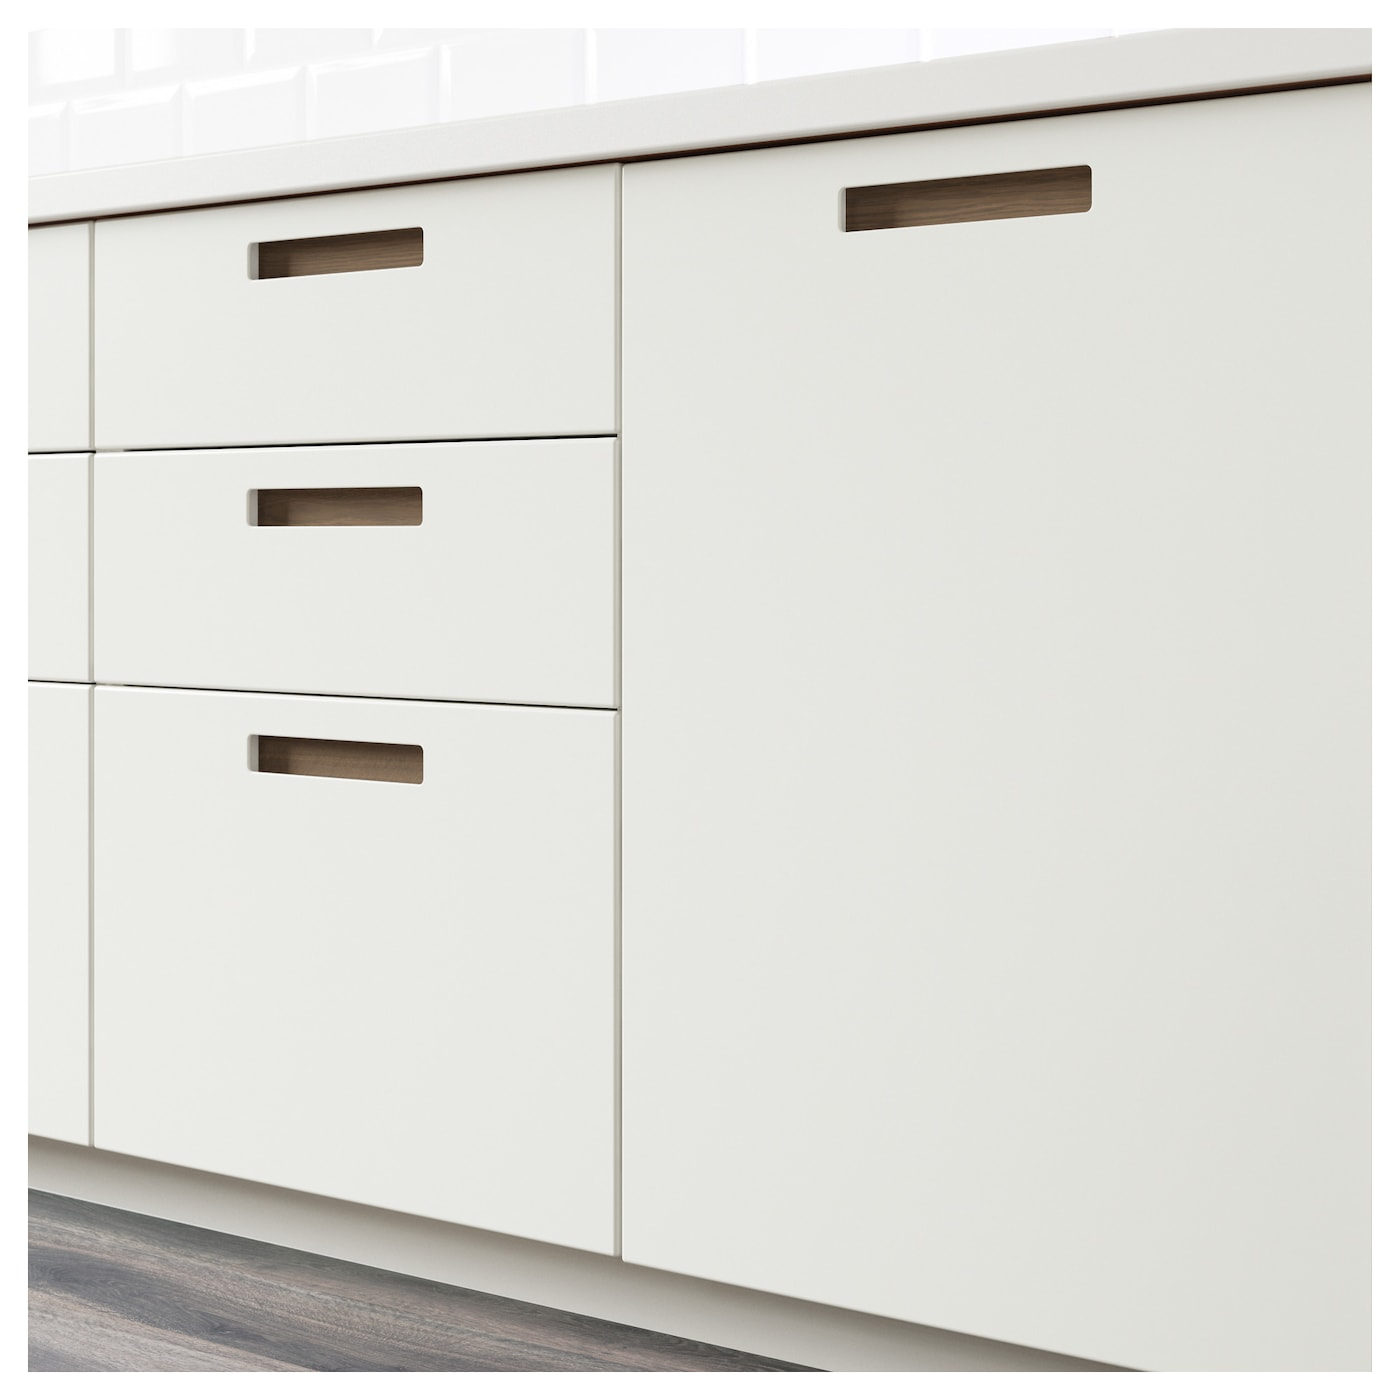 IKEA MÄRSTA 2-p door f corner base cabinet set